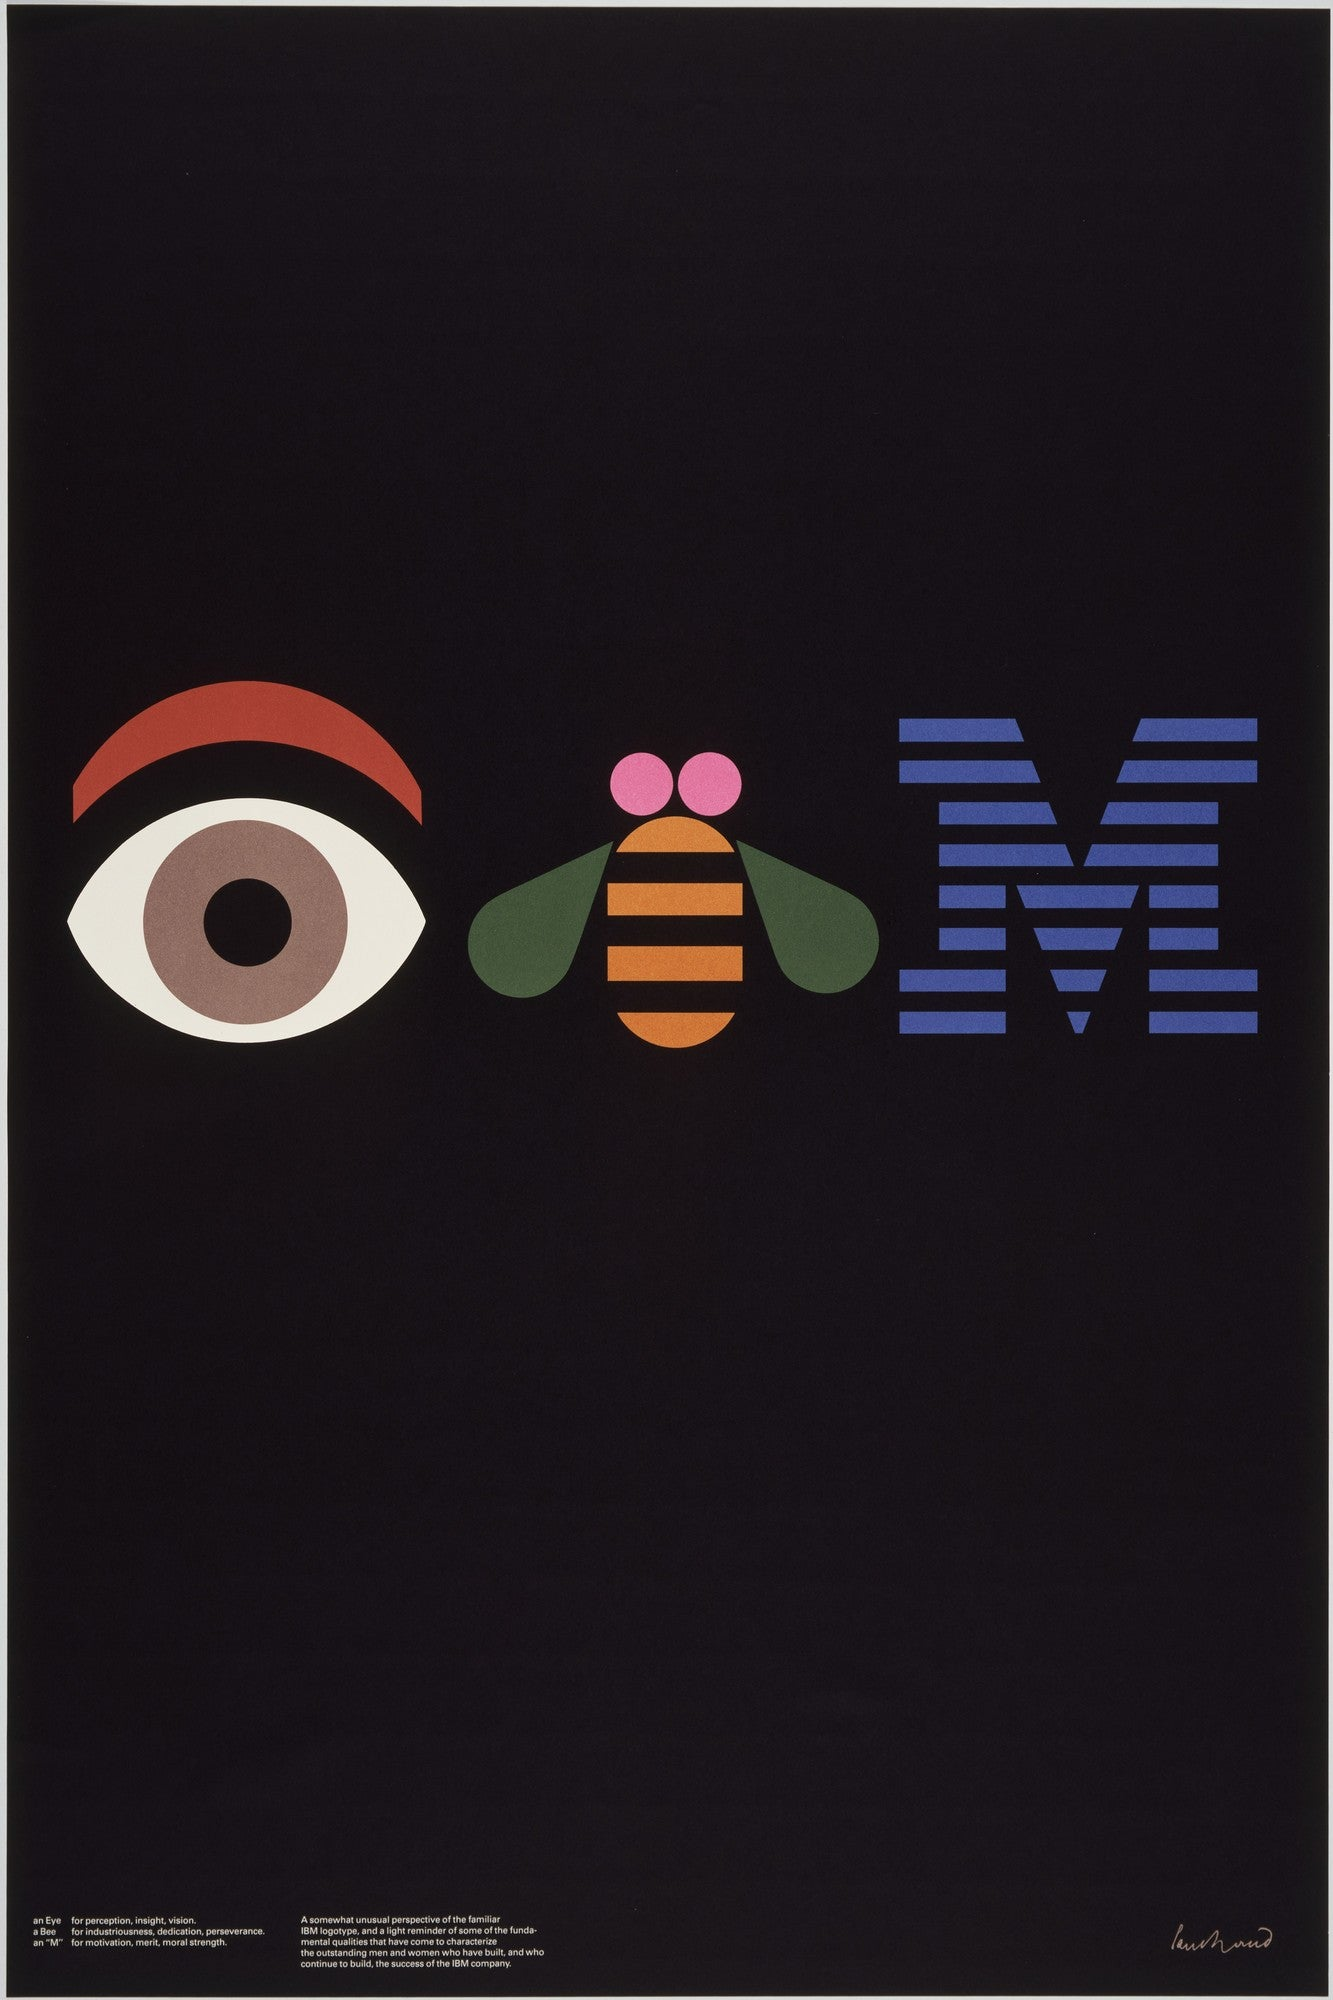 Paul Rand IBM Eye